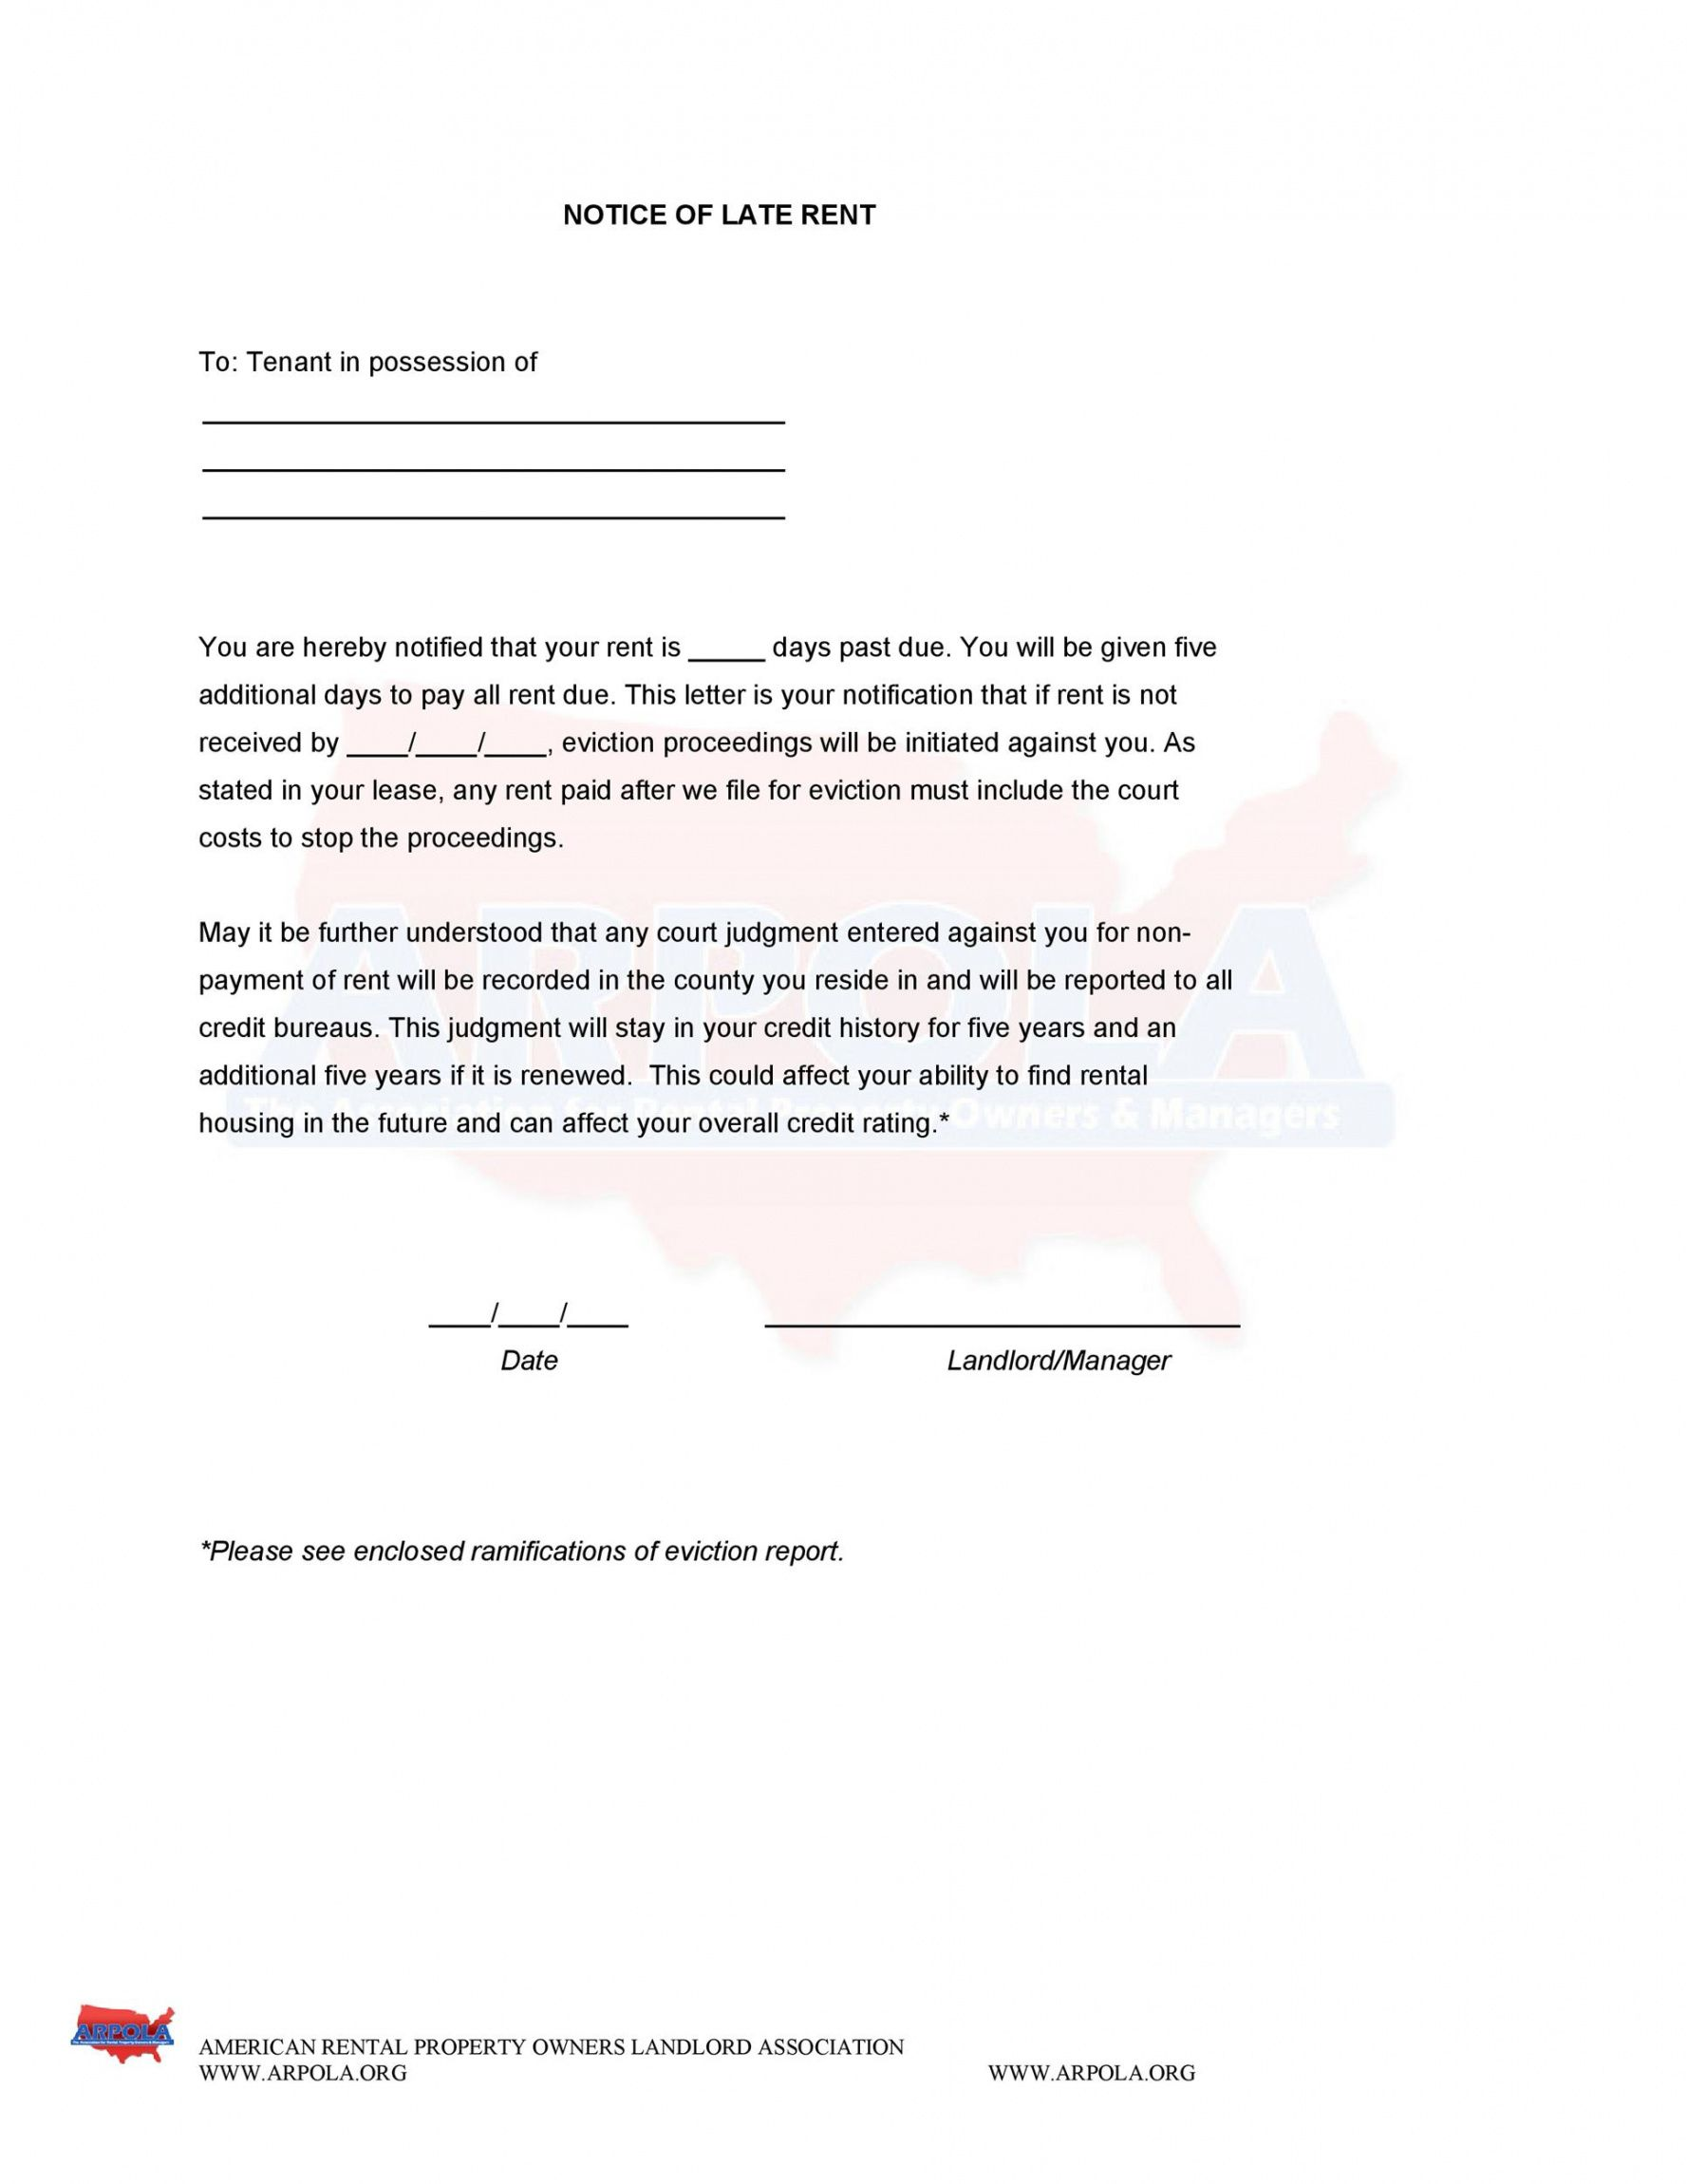 printable 34 printable late rent notice templates  templatelab notice of late rent payment template excel